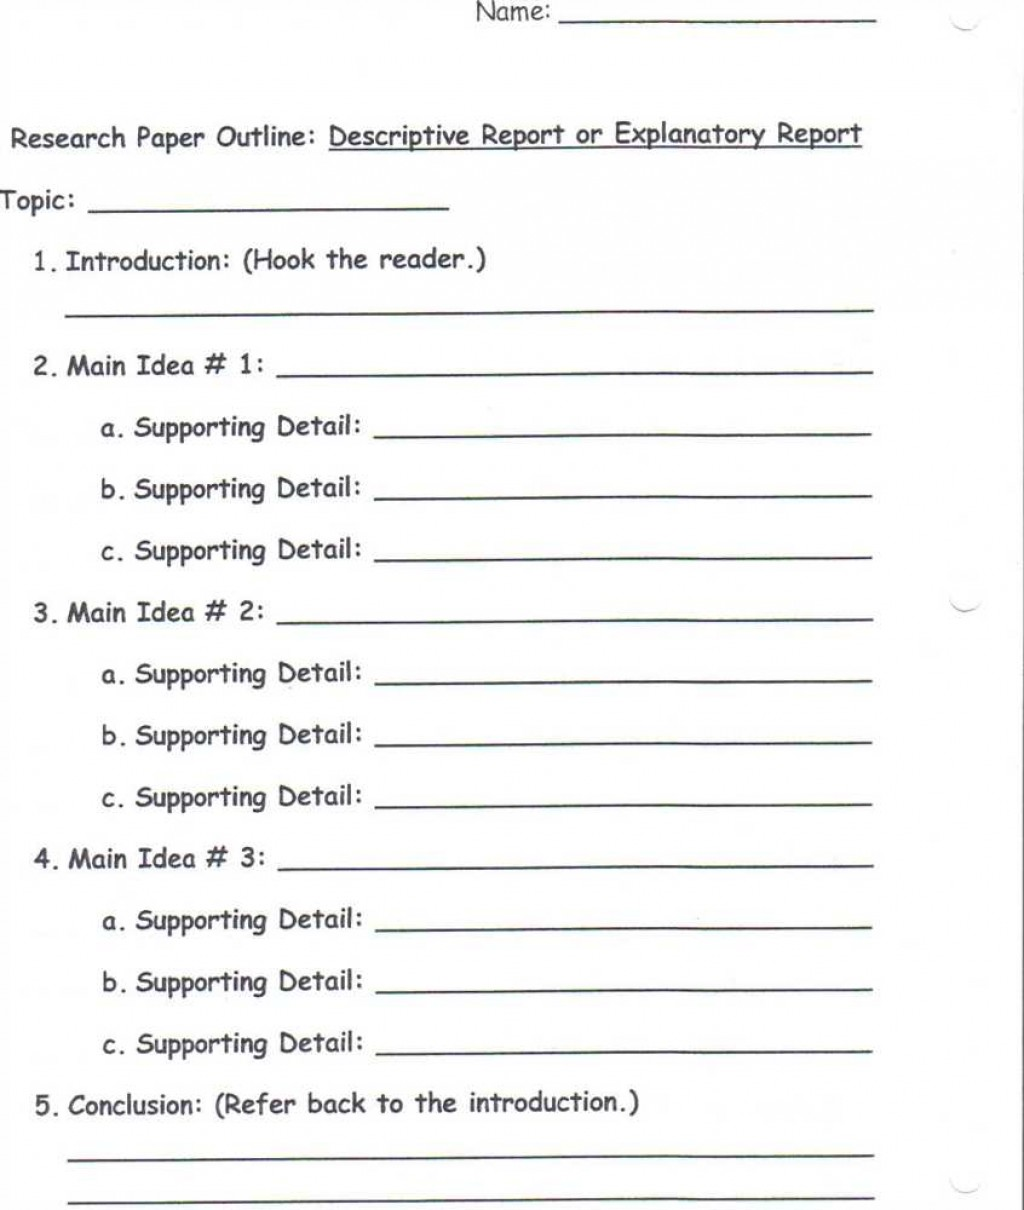 003 Observation Essays Descriptive Essay Outline For Ethnogr Ethnographic Outstanding Template Pdf About A Person Large